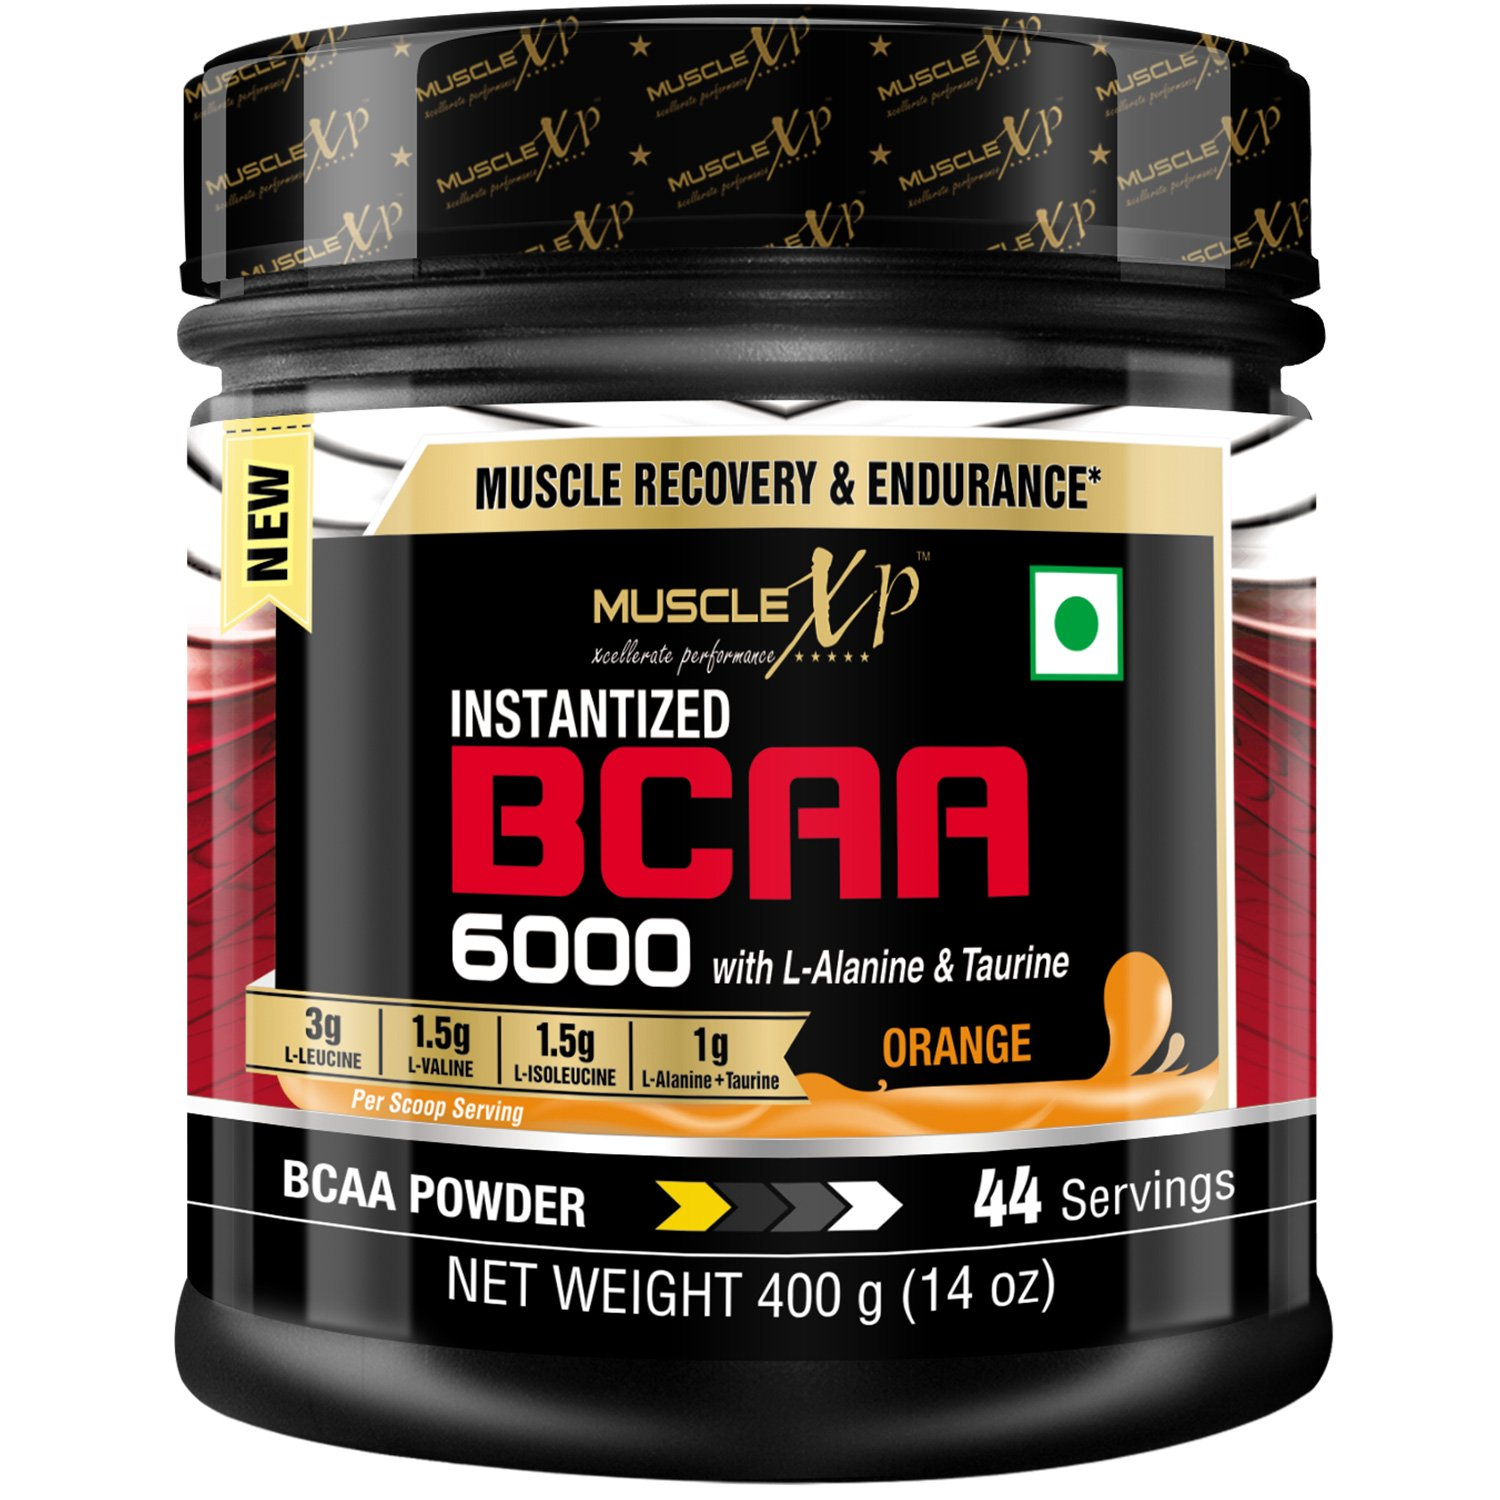 Muscle XP Instantized BCAA 6000 with L-Alanine and Taurine